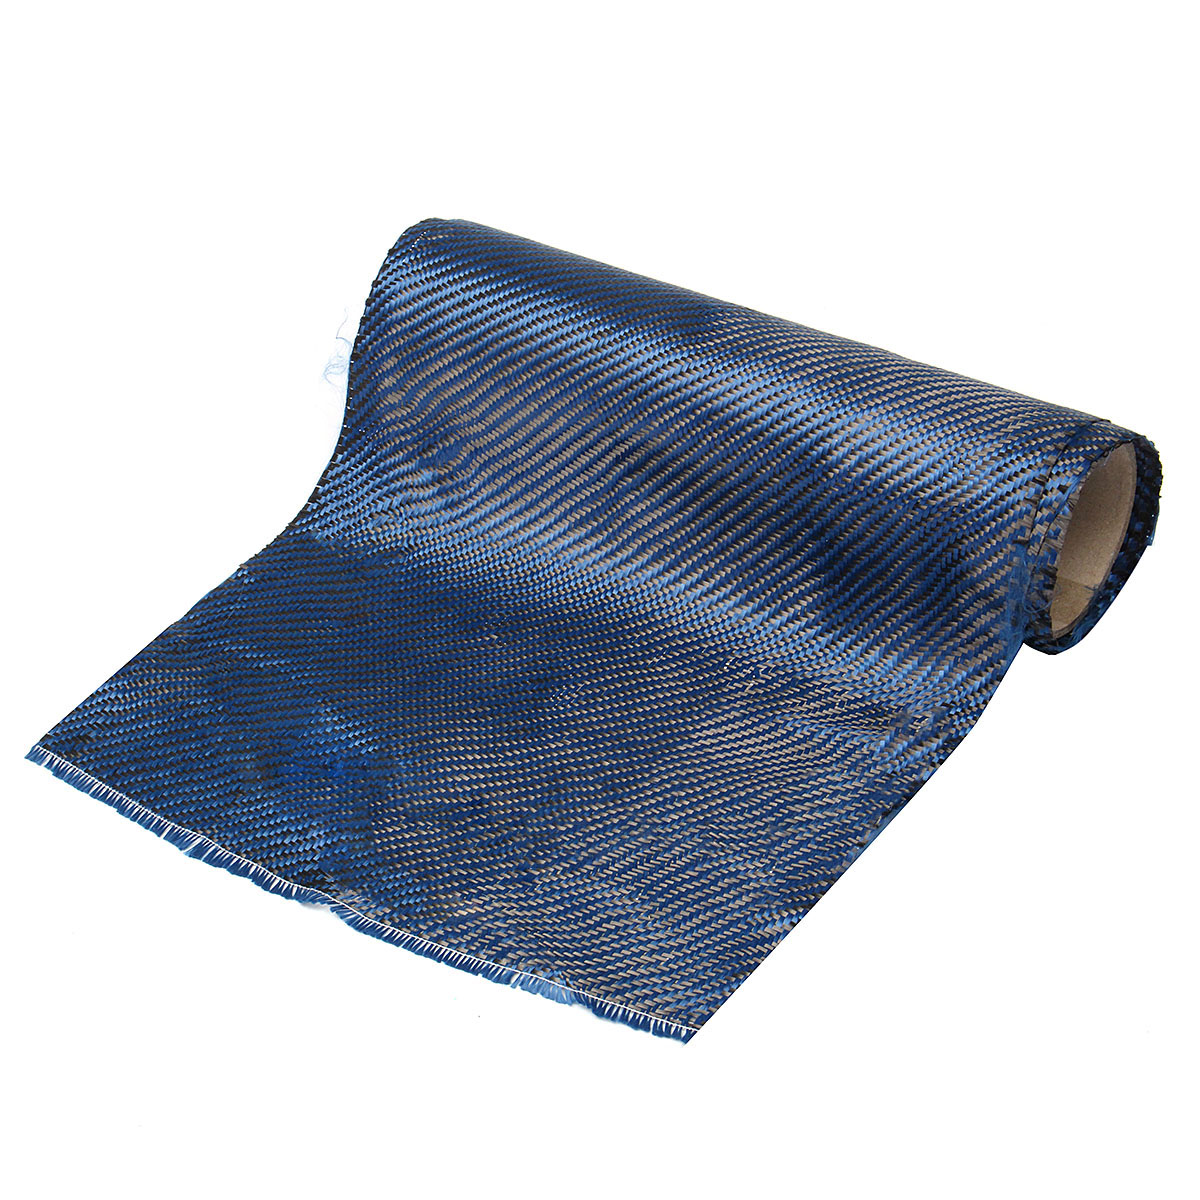 30x100cm Carbon Fiber Fabric Aramid Twill Cloth Film Blue 200gsm for Craft DIY Decoration